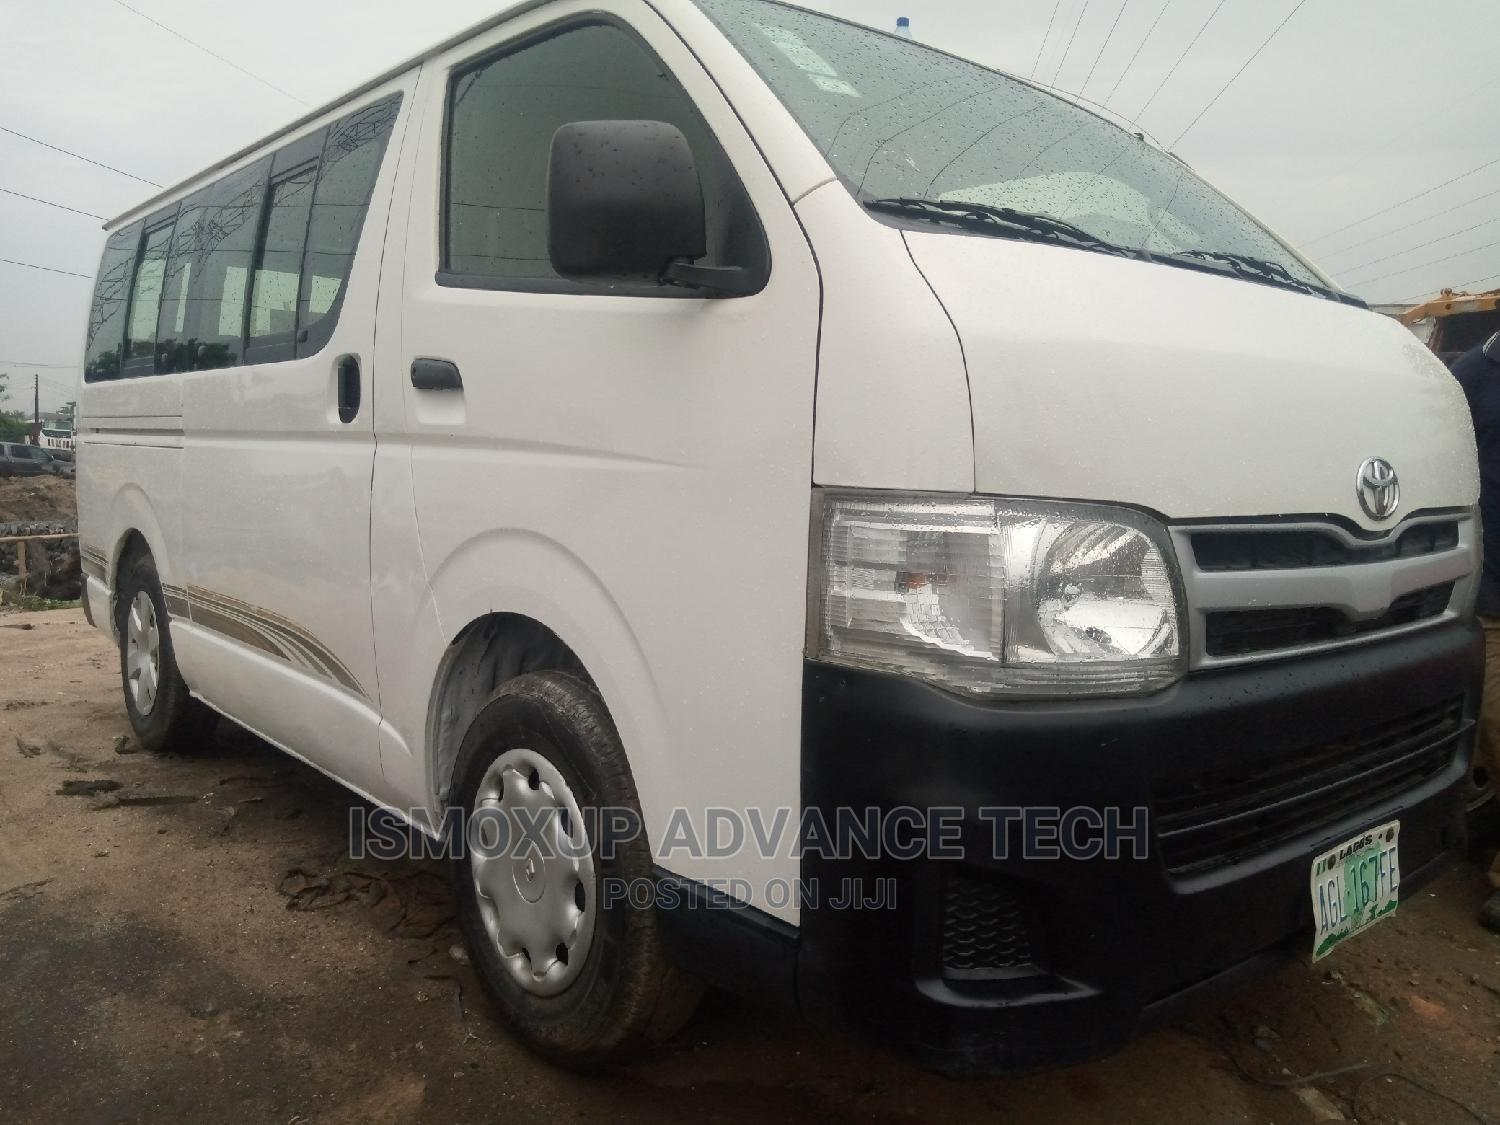 Archive: TOYOTA Hiace 2012 BUS